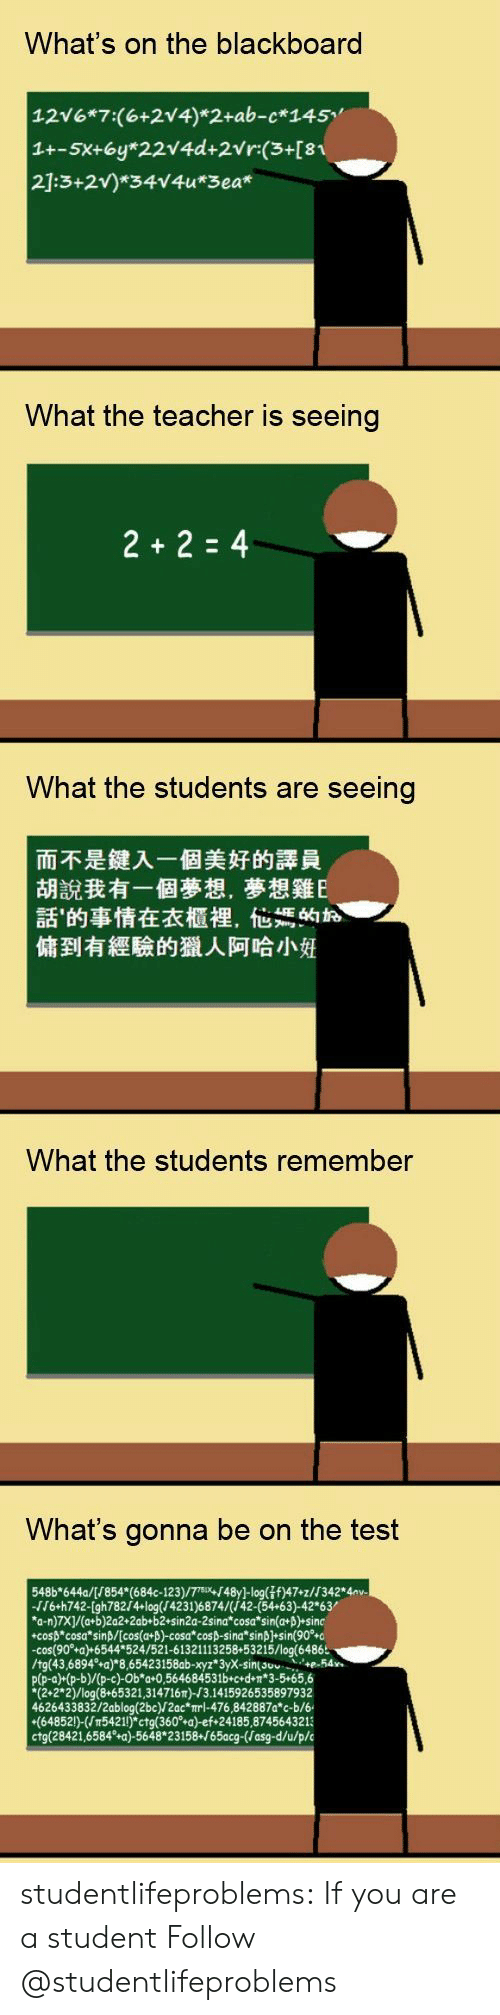 "suv: What's on the blackboard  12V6 7:(6+2V4) 2+ab-c 145  What the teacher is seeing  What the students are seeing  而不是鍵入一個美好的譯員  胡說我有一個夢想,夢想雞E  話'的事情在衣櫃裡,他媽的お  傭到有經驗的獵人阿哈小姙  What the students remember  What's gonna be on the test  548b""644a/(/854* (684c-123)/7m,/48yJ-log(⅞f)47-z//342° 4av.  /6+h742-[gh782/4-log(/4231 )6874/(/42-54+63)-42*63/  a-n)7X)/(a+b)2a2+2ab+b2 sin2a-2sina cosa sina+p) sine  -cosp""cosa""sinß/(cos(a+p)-cosa""cocp-sina""sinh]+sin(90%o  -cos(90°+a)+6544*524/521-61321113258+53215/log(6486  /tg(43,6894%a)""8,65423158ab-xyz""3yX-sin(suv e-54.  p(p-a)+(p-b)/(p-c)-Ob a 0,564684531b+cedn 3-5+65,6  ""(2+2""2)/log(8+65321,314716T)-J3.1415926535897932  4626433832/2ablog(2bc)/2ac mrl-476,842887a*c-b/6  (64852)-(5421!) ctg(360° a)-ef 24185,8745643213  ctg(28421,6584 +a)-5648 23158+/65acg-(Jasg-d/u/p/c studentlifeproblems:  If you are a student Follow @studentlifeproblems​"